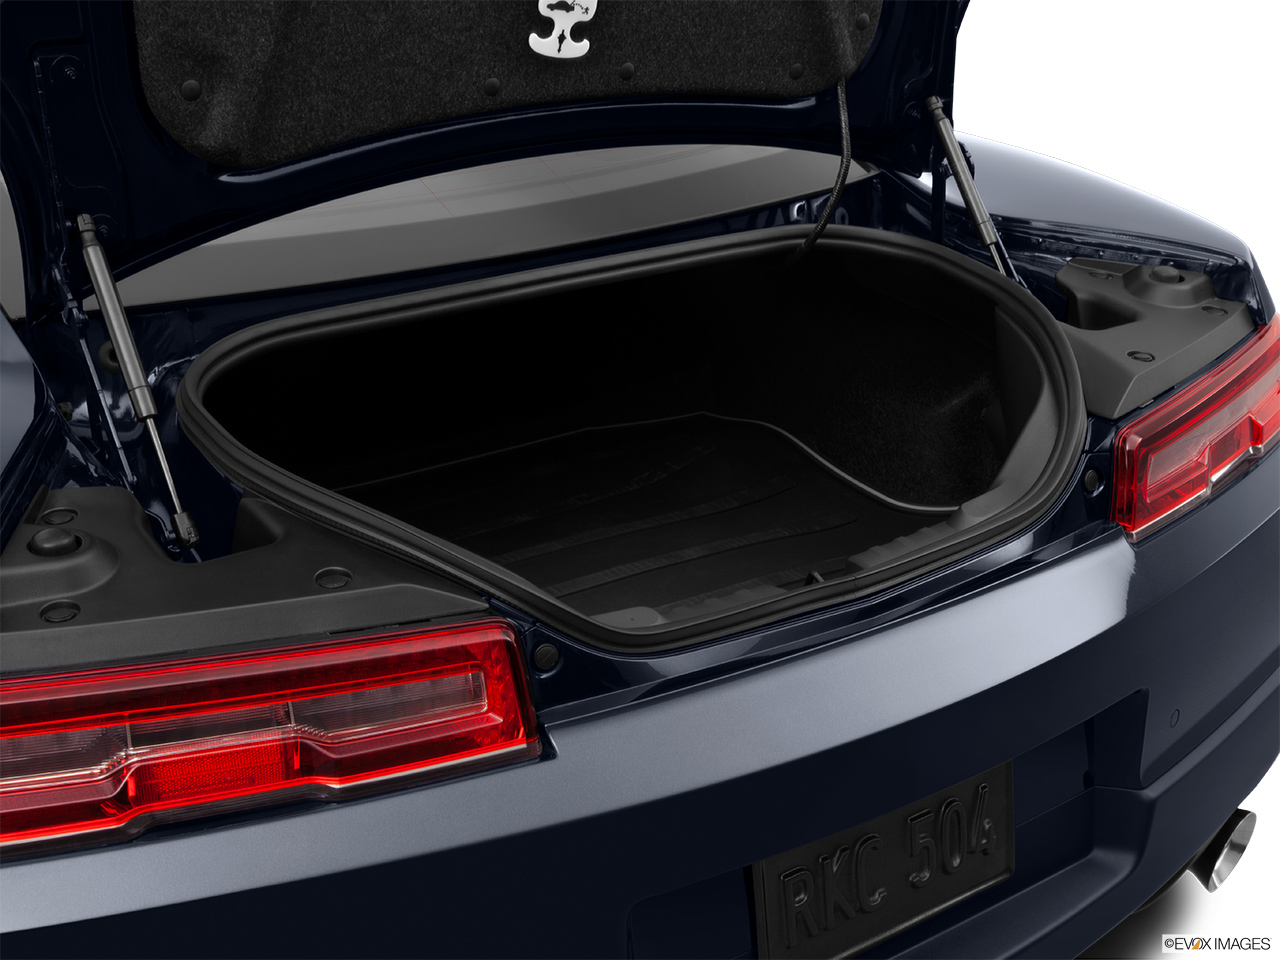 How to open the trunk in the GTA